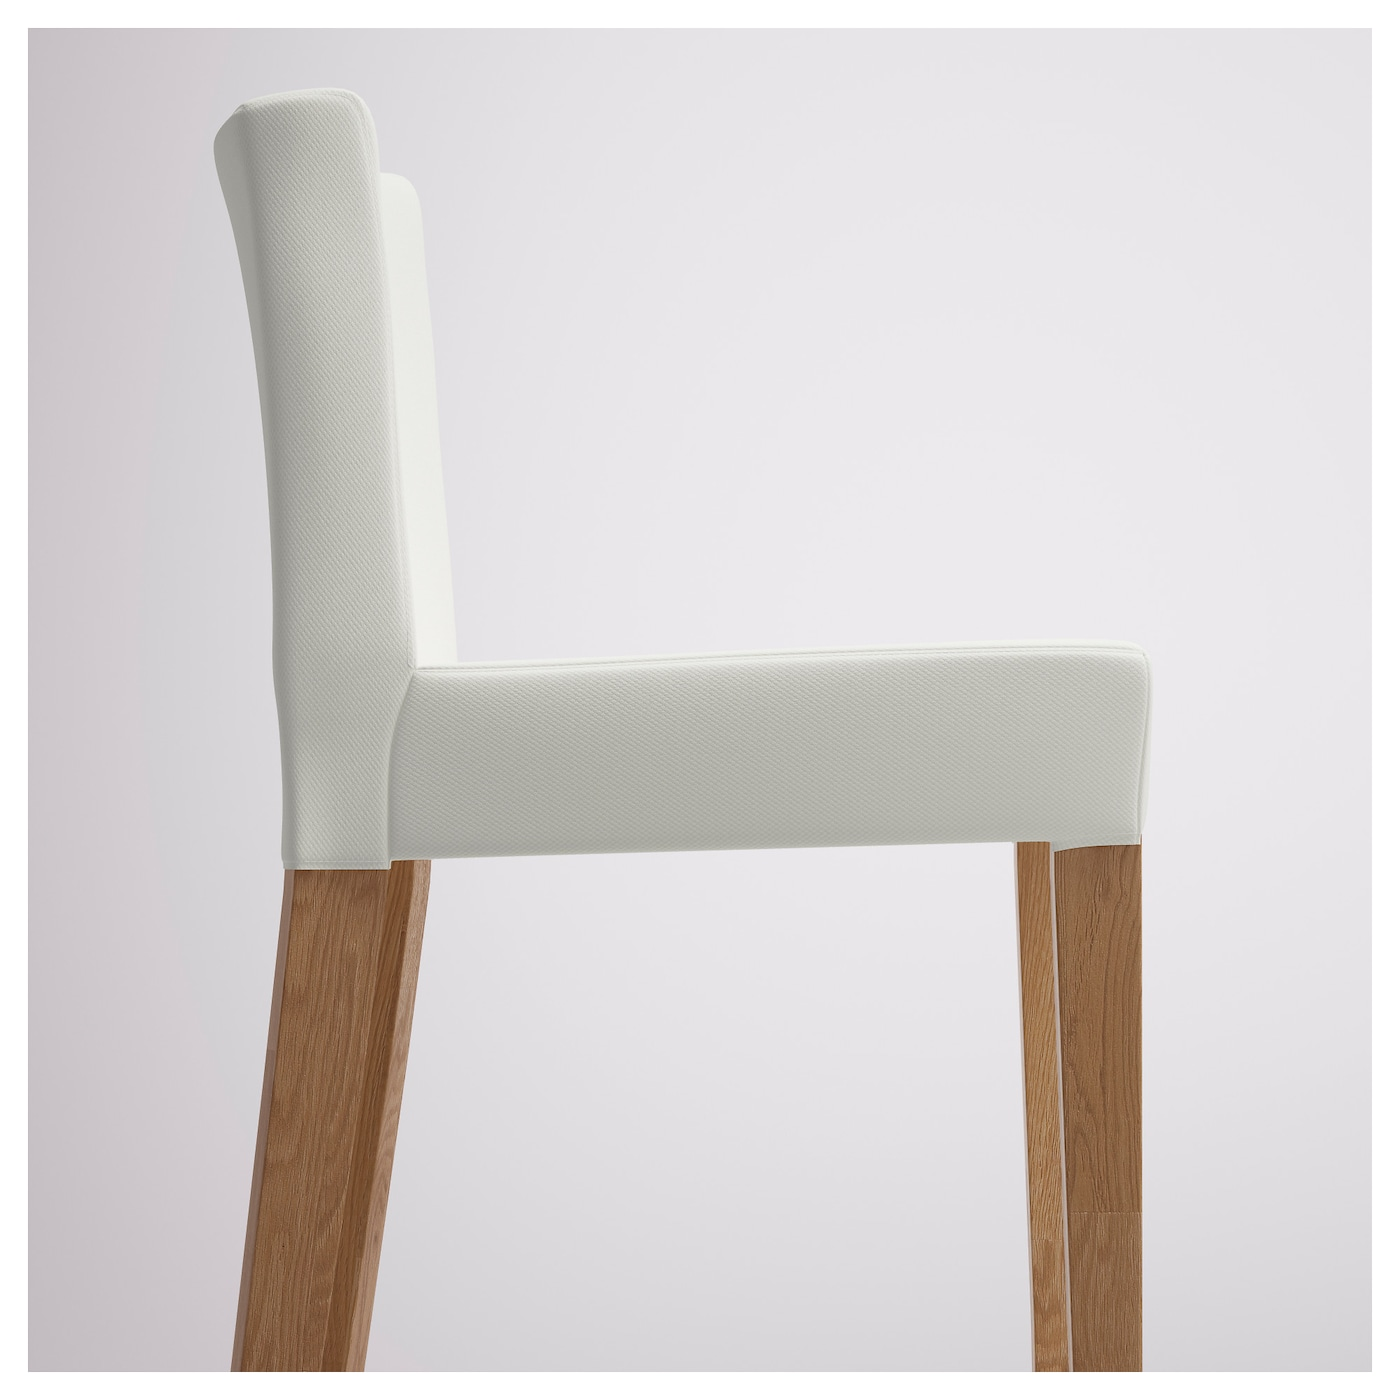 #764F31 IKEA HENRIKSDAL Bar Stool With Backrest The Padded Seat Means You Sit  with 2000x2000 px of Most Effective Ikea Oak Chairs 20002000 wallpaper @ avoidforclosure.info